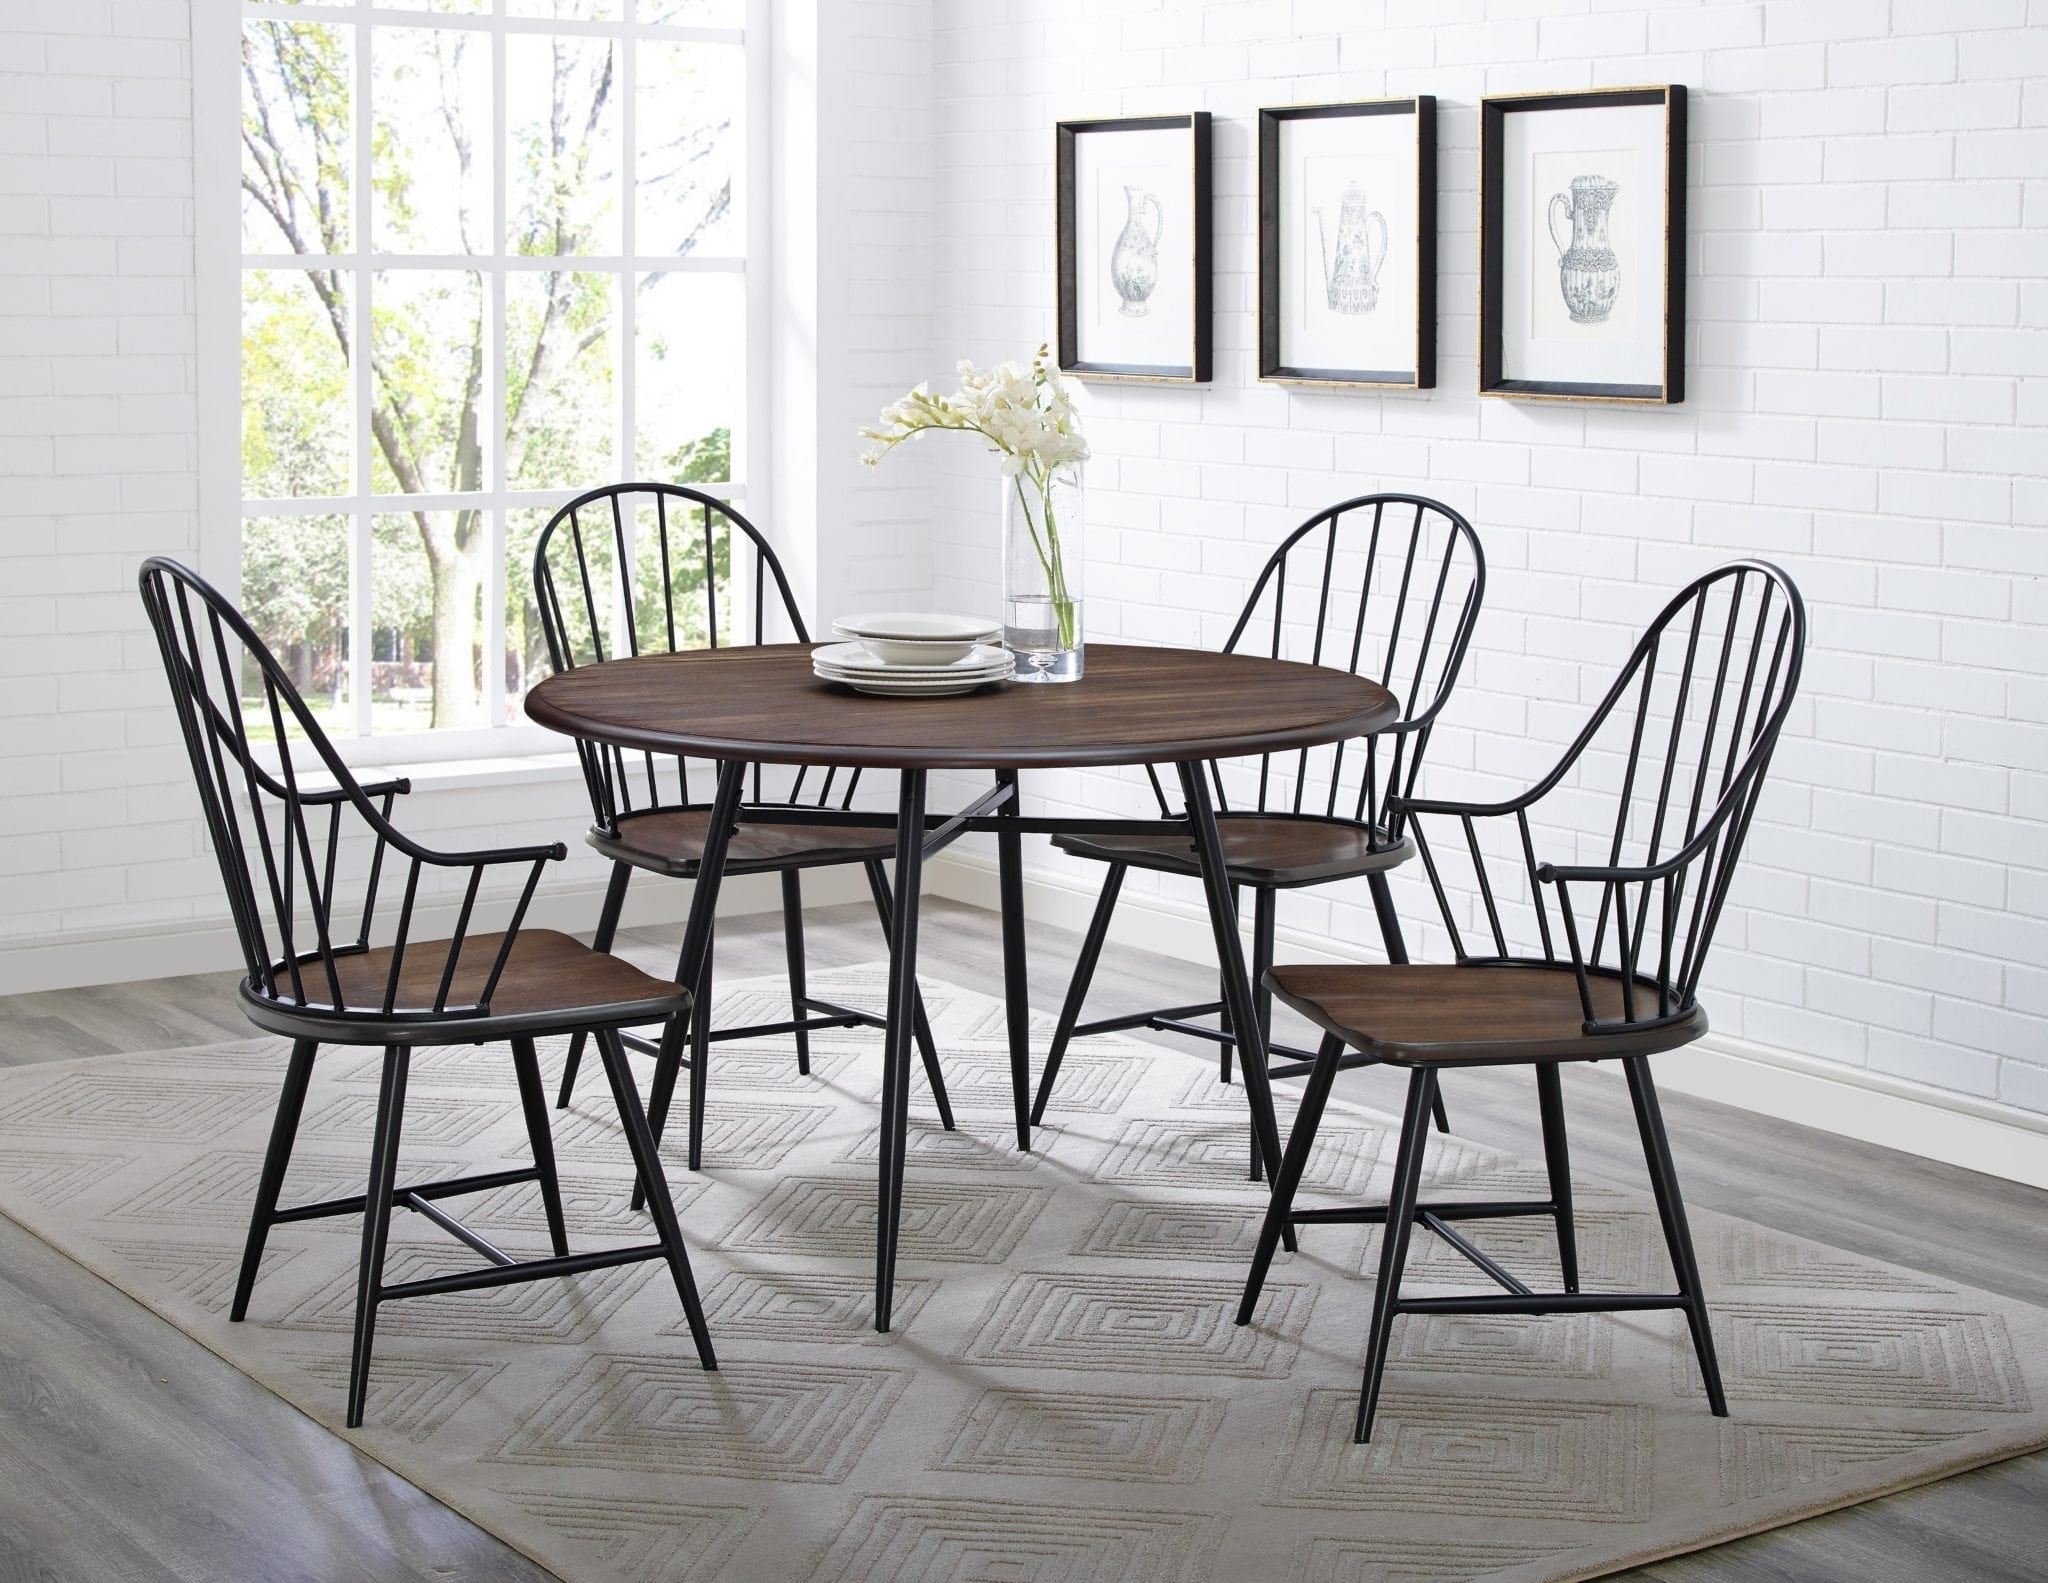 Davis Home Furniture – Asheville, Canton & Waynesville, Nc In Jaxon 5 Piece Extension Round Dining Sets With Wood Chairs (Gallery 11 of 25)